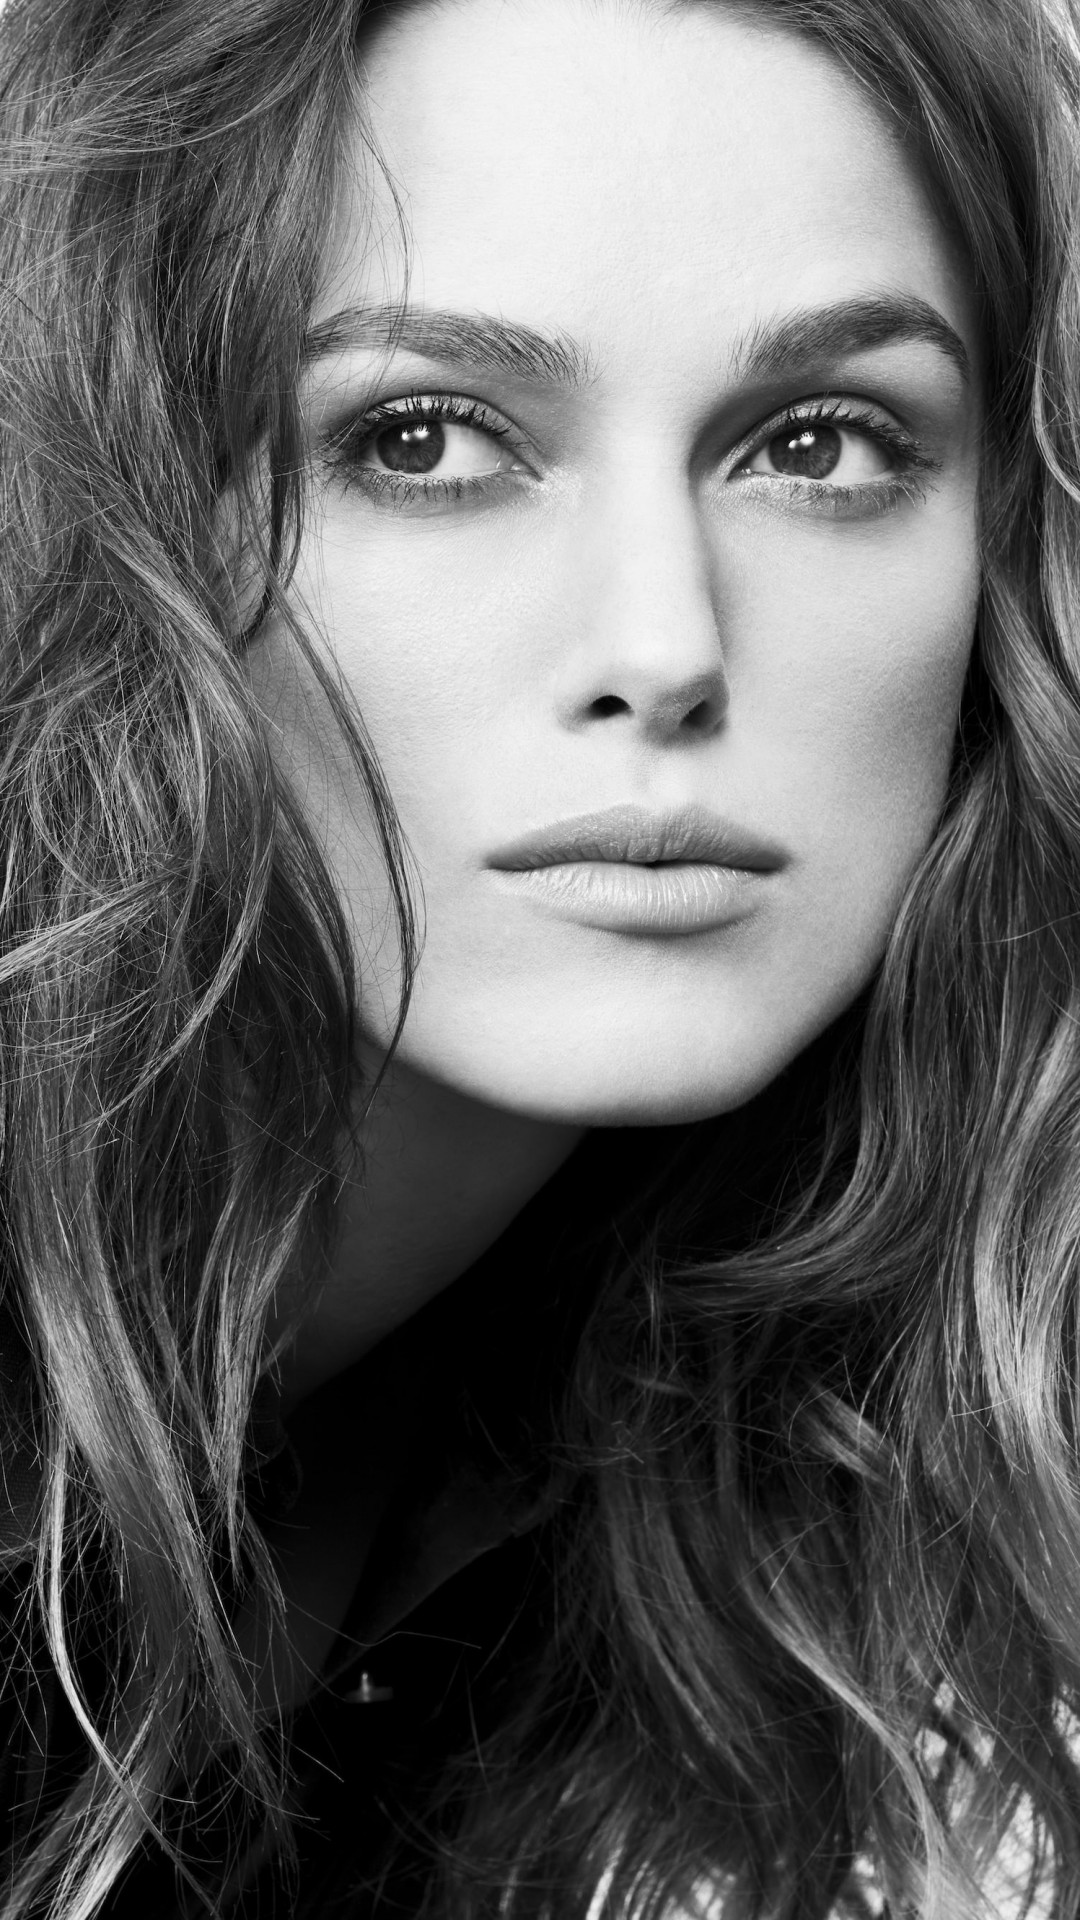 Keira Knightley in Black & White Wallpaper for Motorola Moto X